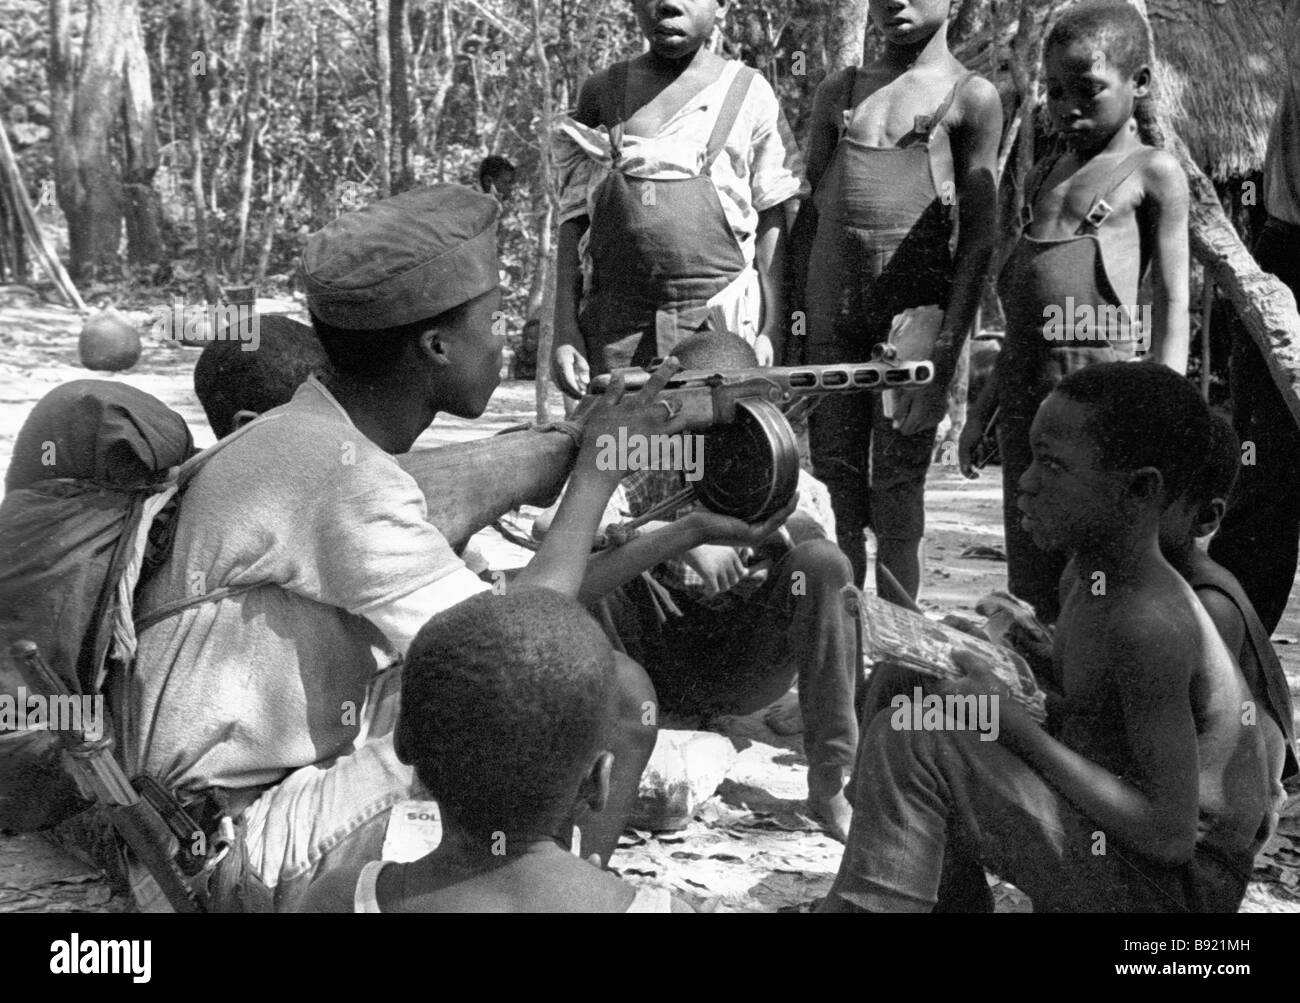 Young Angolans observing guerrilla weapons - Stock Image